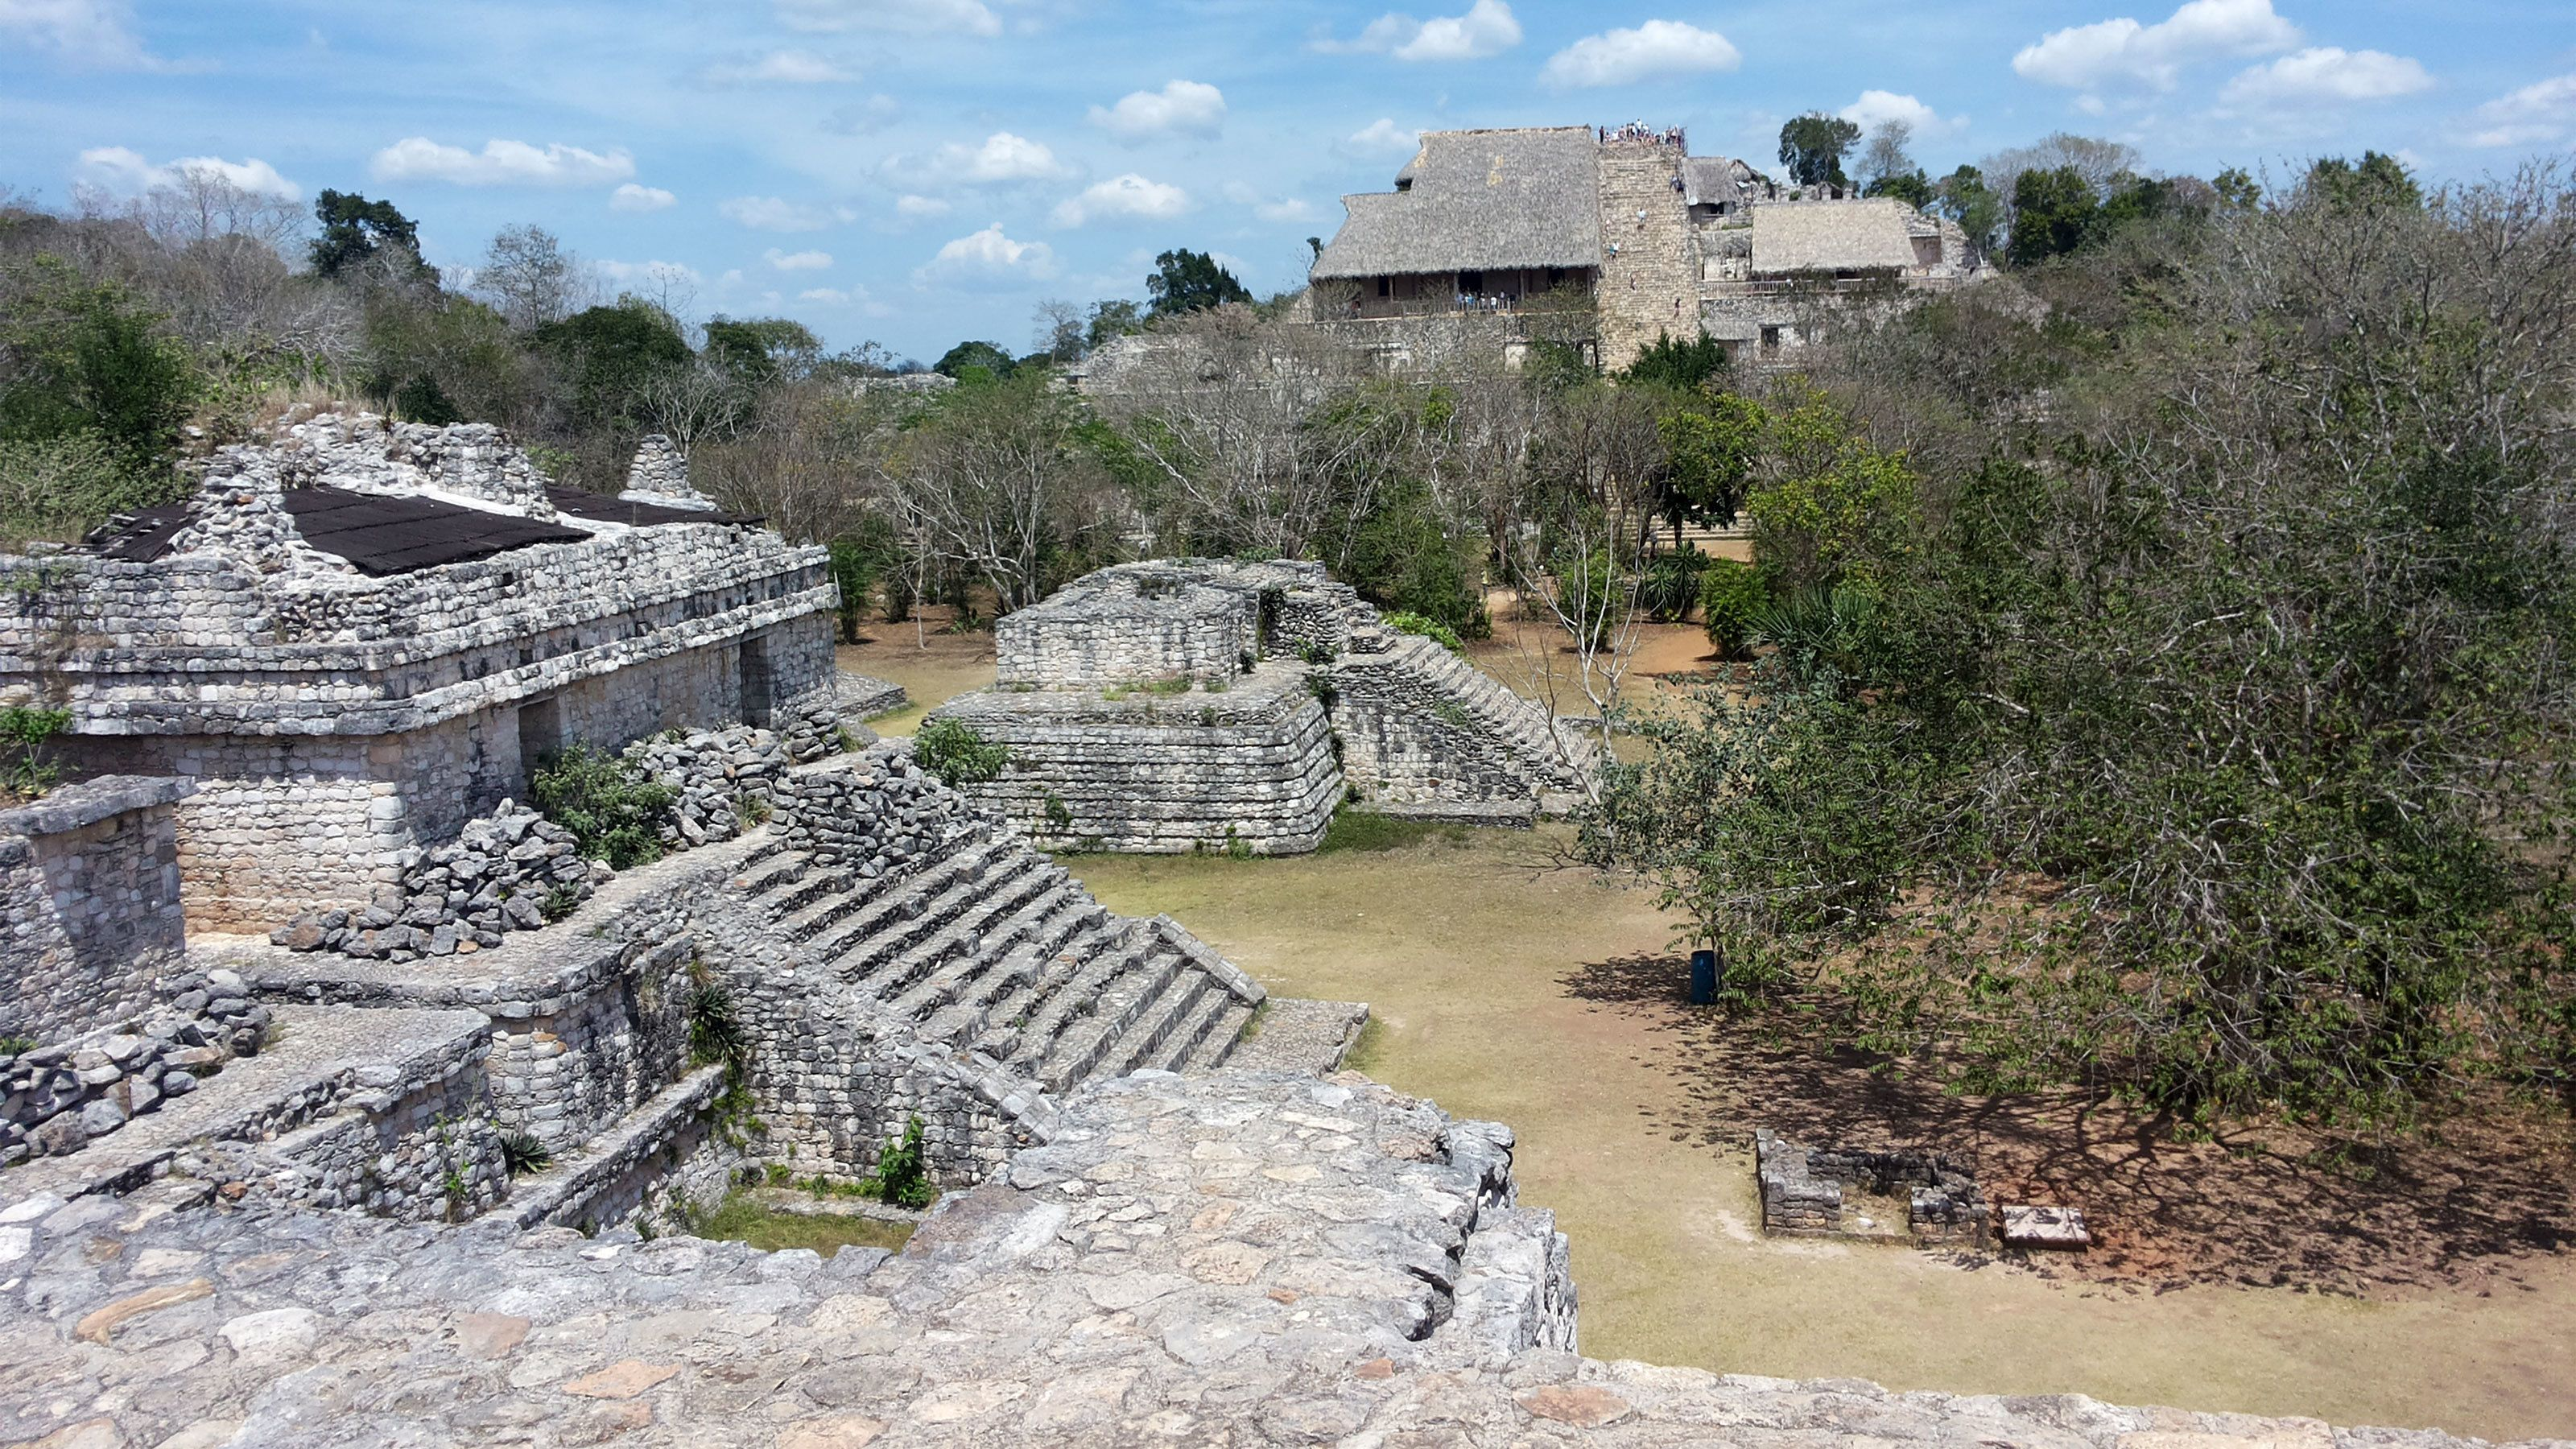 Archaeological site of the Mayan ruins of Ek' Balam